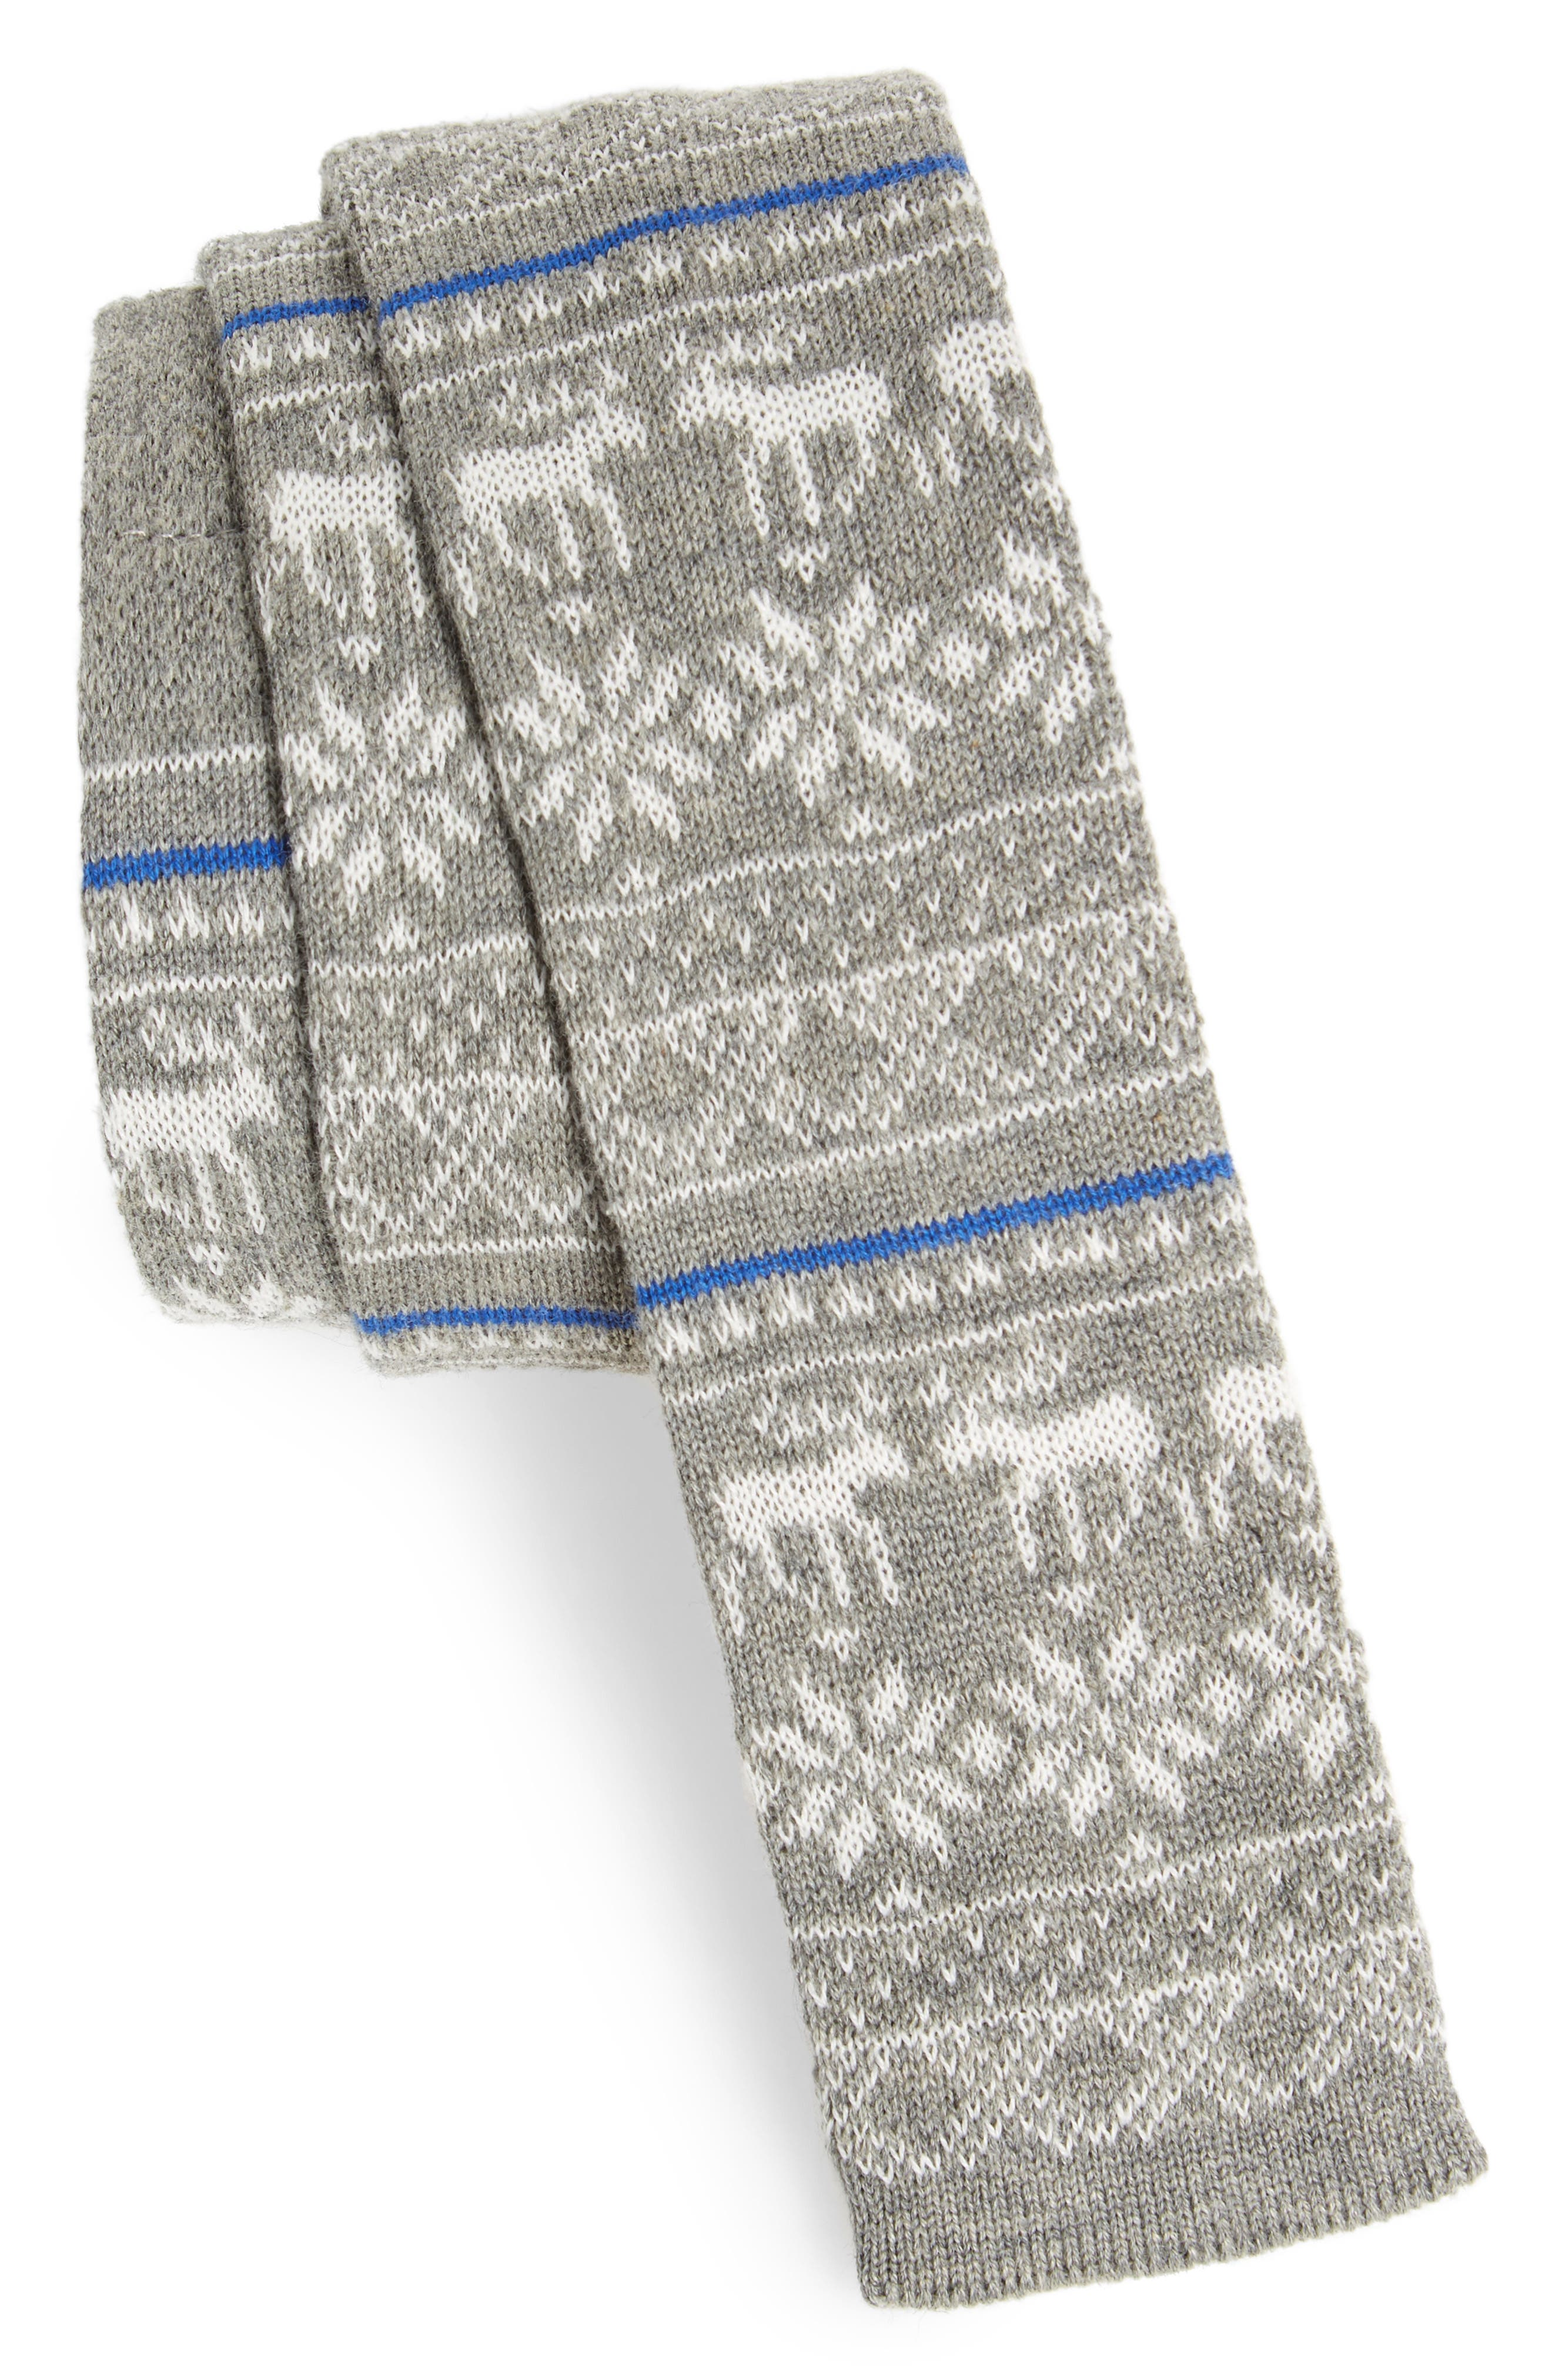 Alternate Image 1 Selected - Nordstrom Men's Shop Knit Cotton Tie